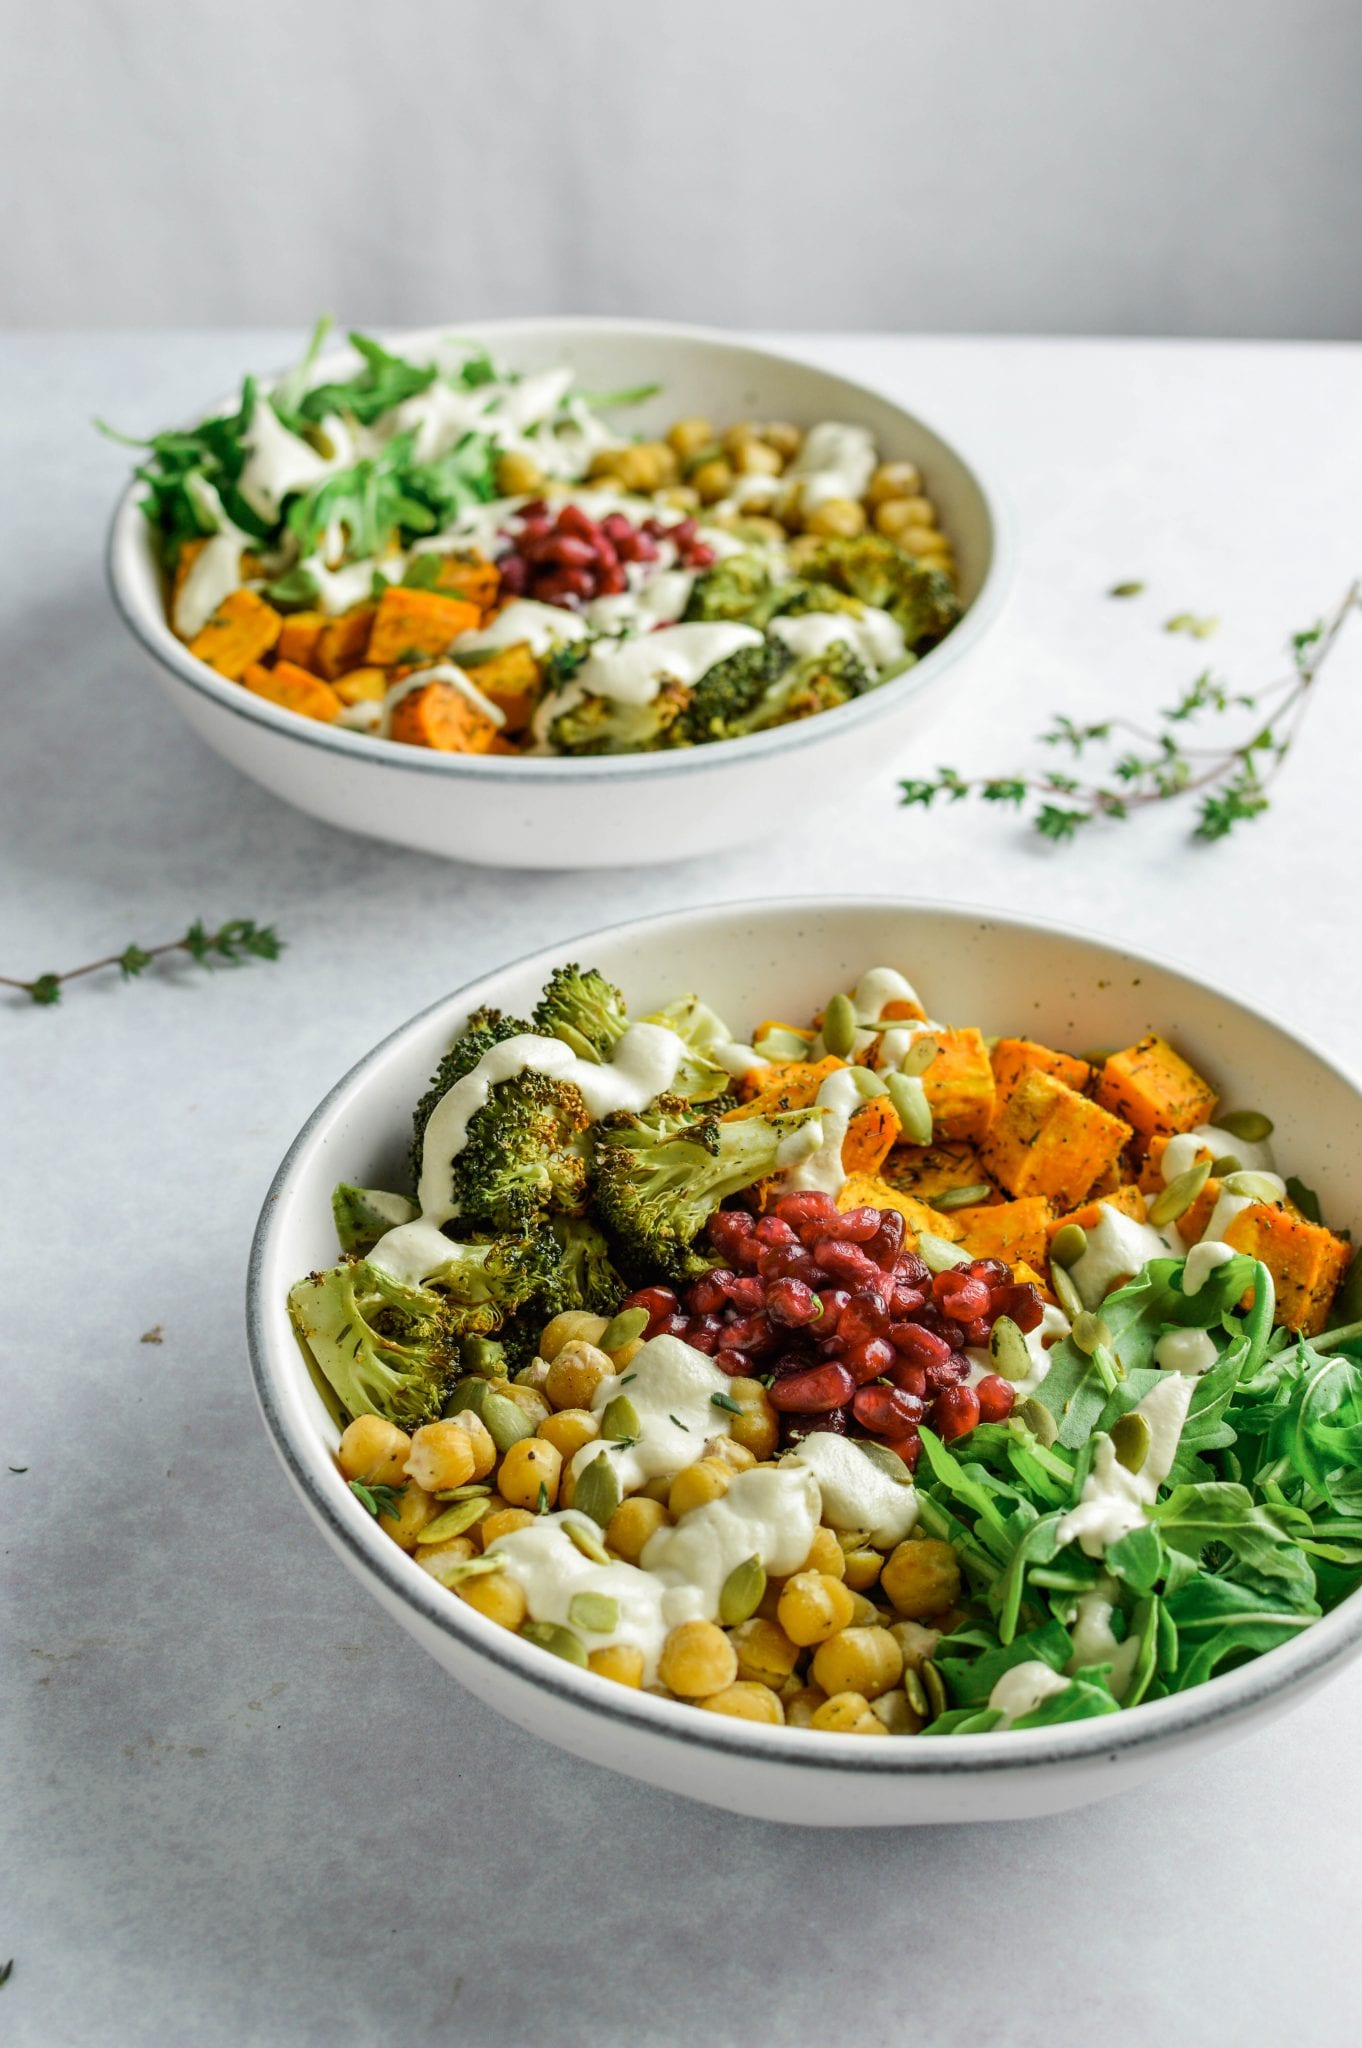 Roasted Vegetable & Chickpea Harvest Bowl | Gluten Free | Oil Free Option